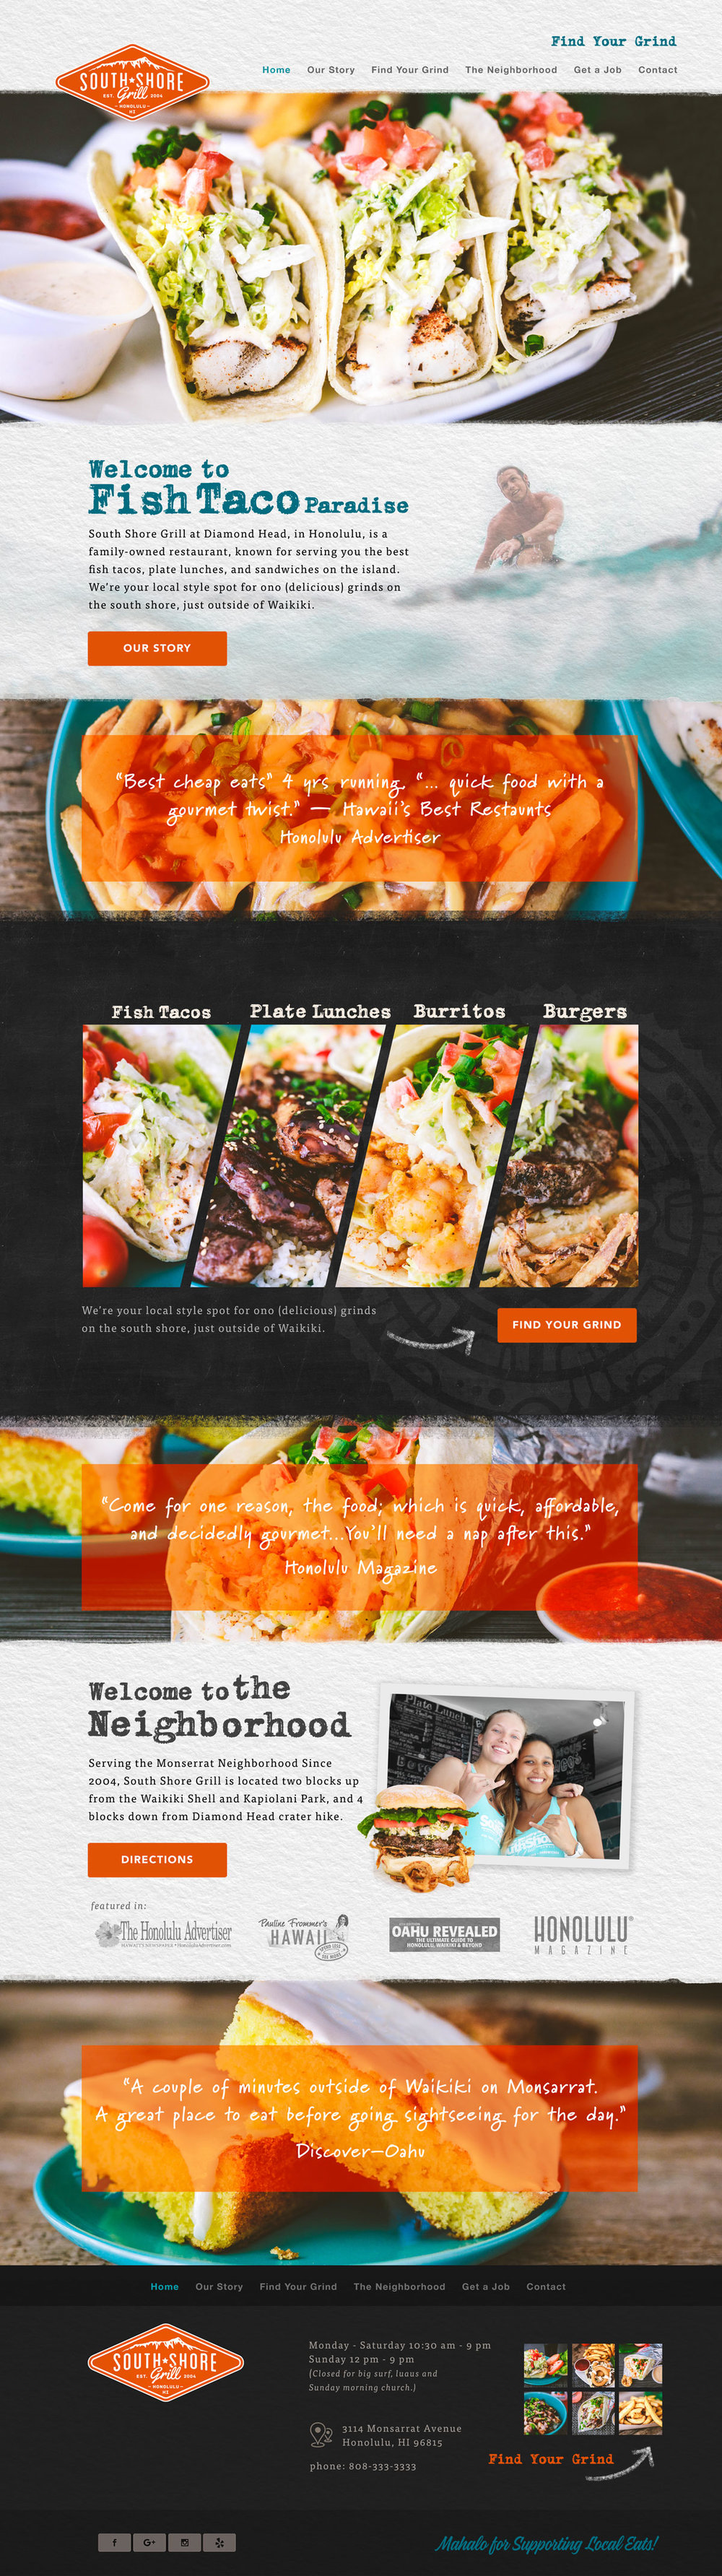 South-Shore-Grill-Website-Design-Matt-Coffman-2.jpg